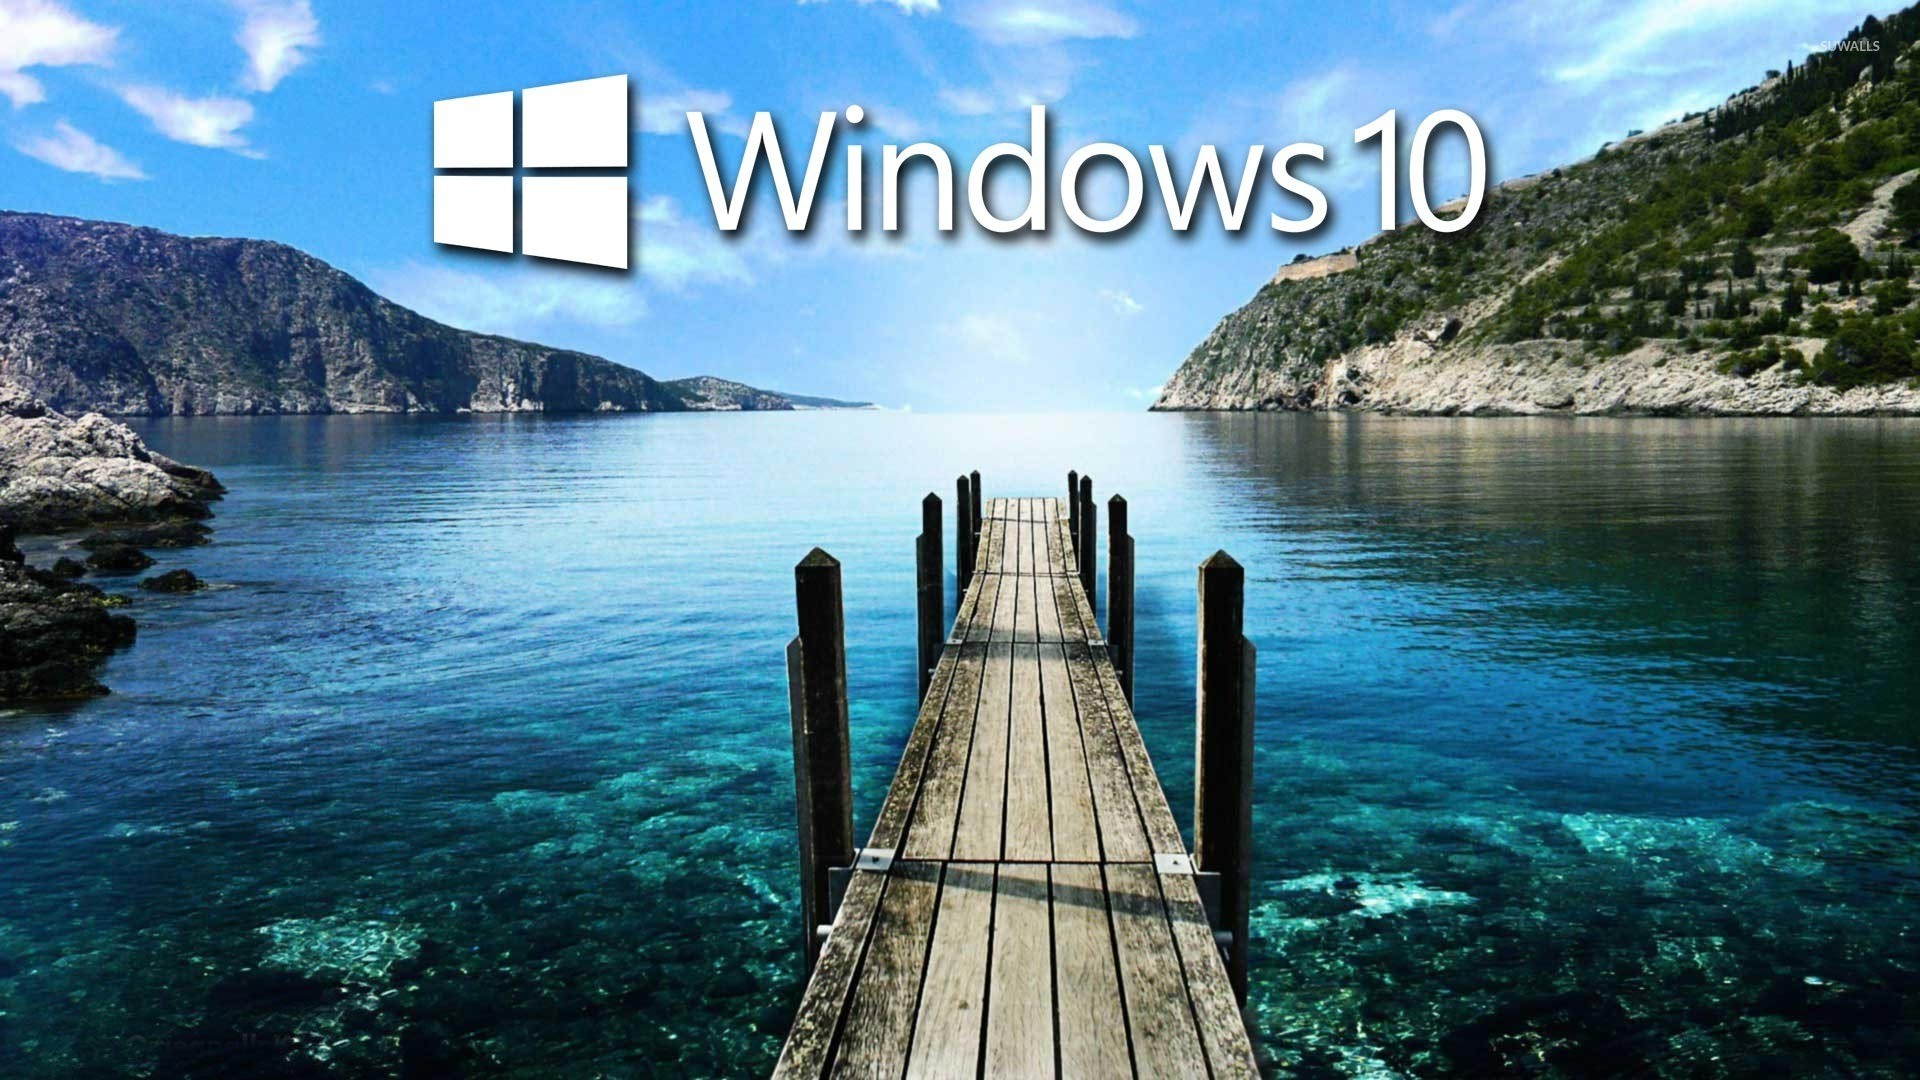 Windows 10 Wallpapers 1920x1080 (74+ images)